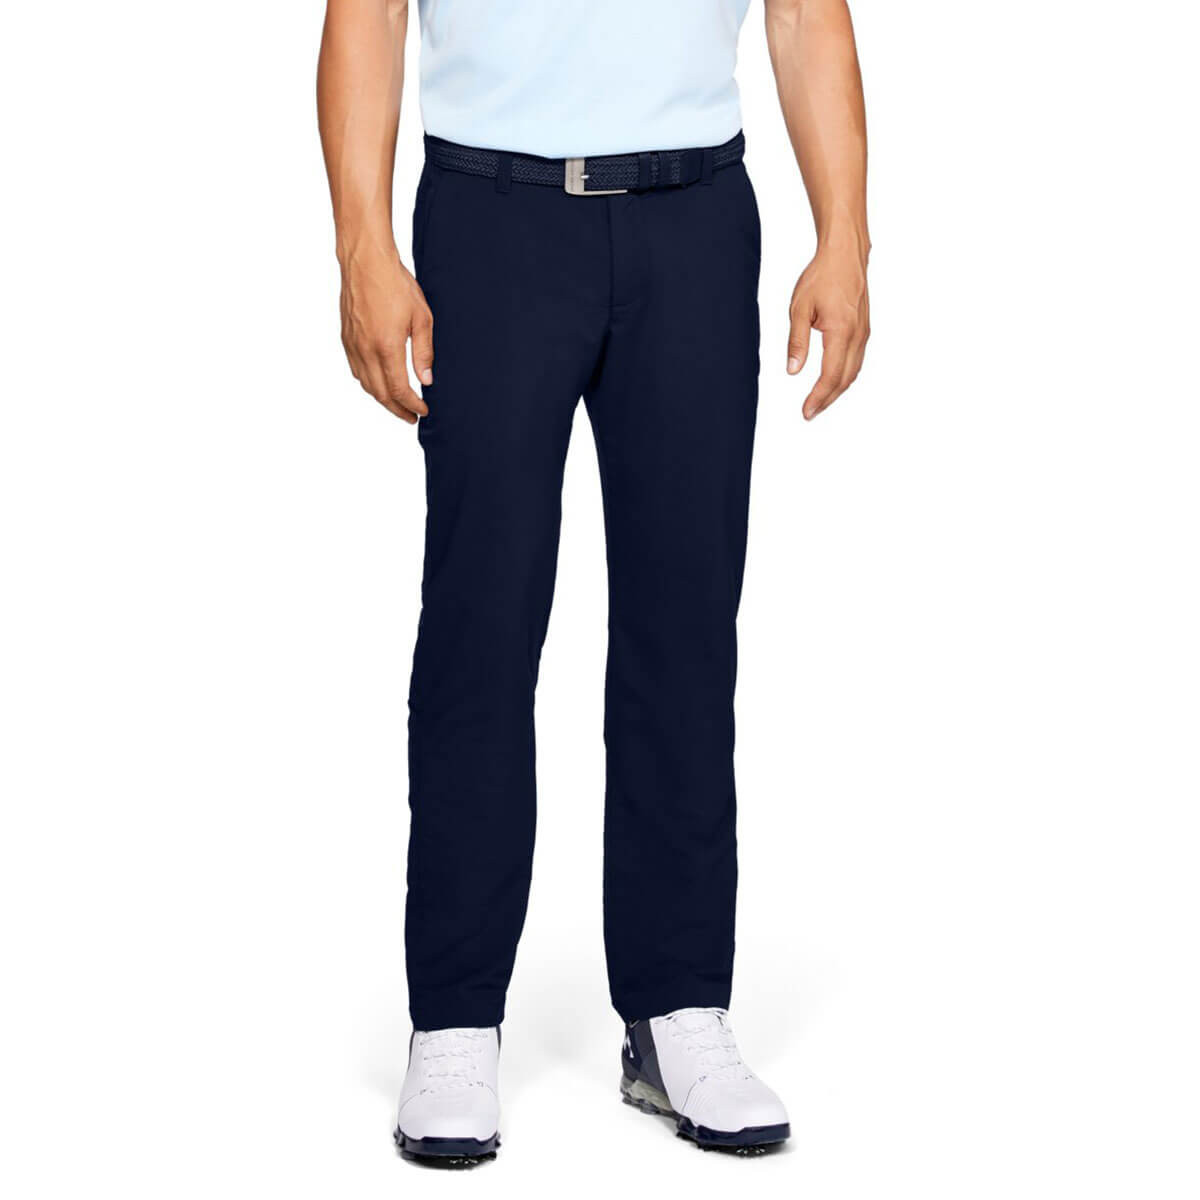 ab0f639af Under Armour Mens 2019 EU Performance Slim Tapered Golf Trousers